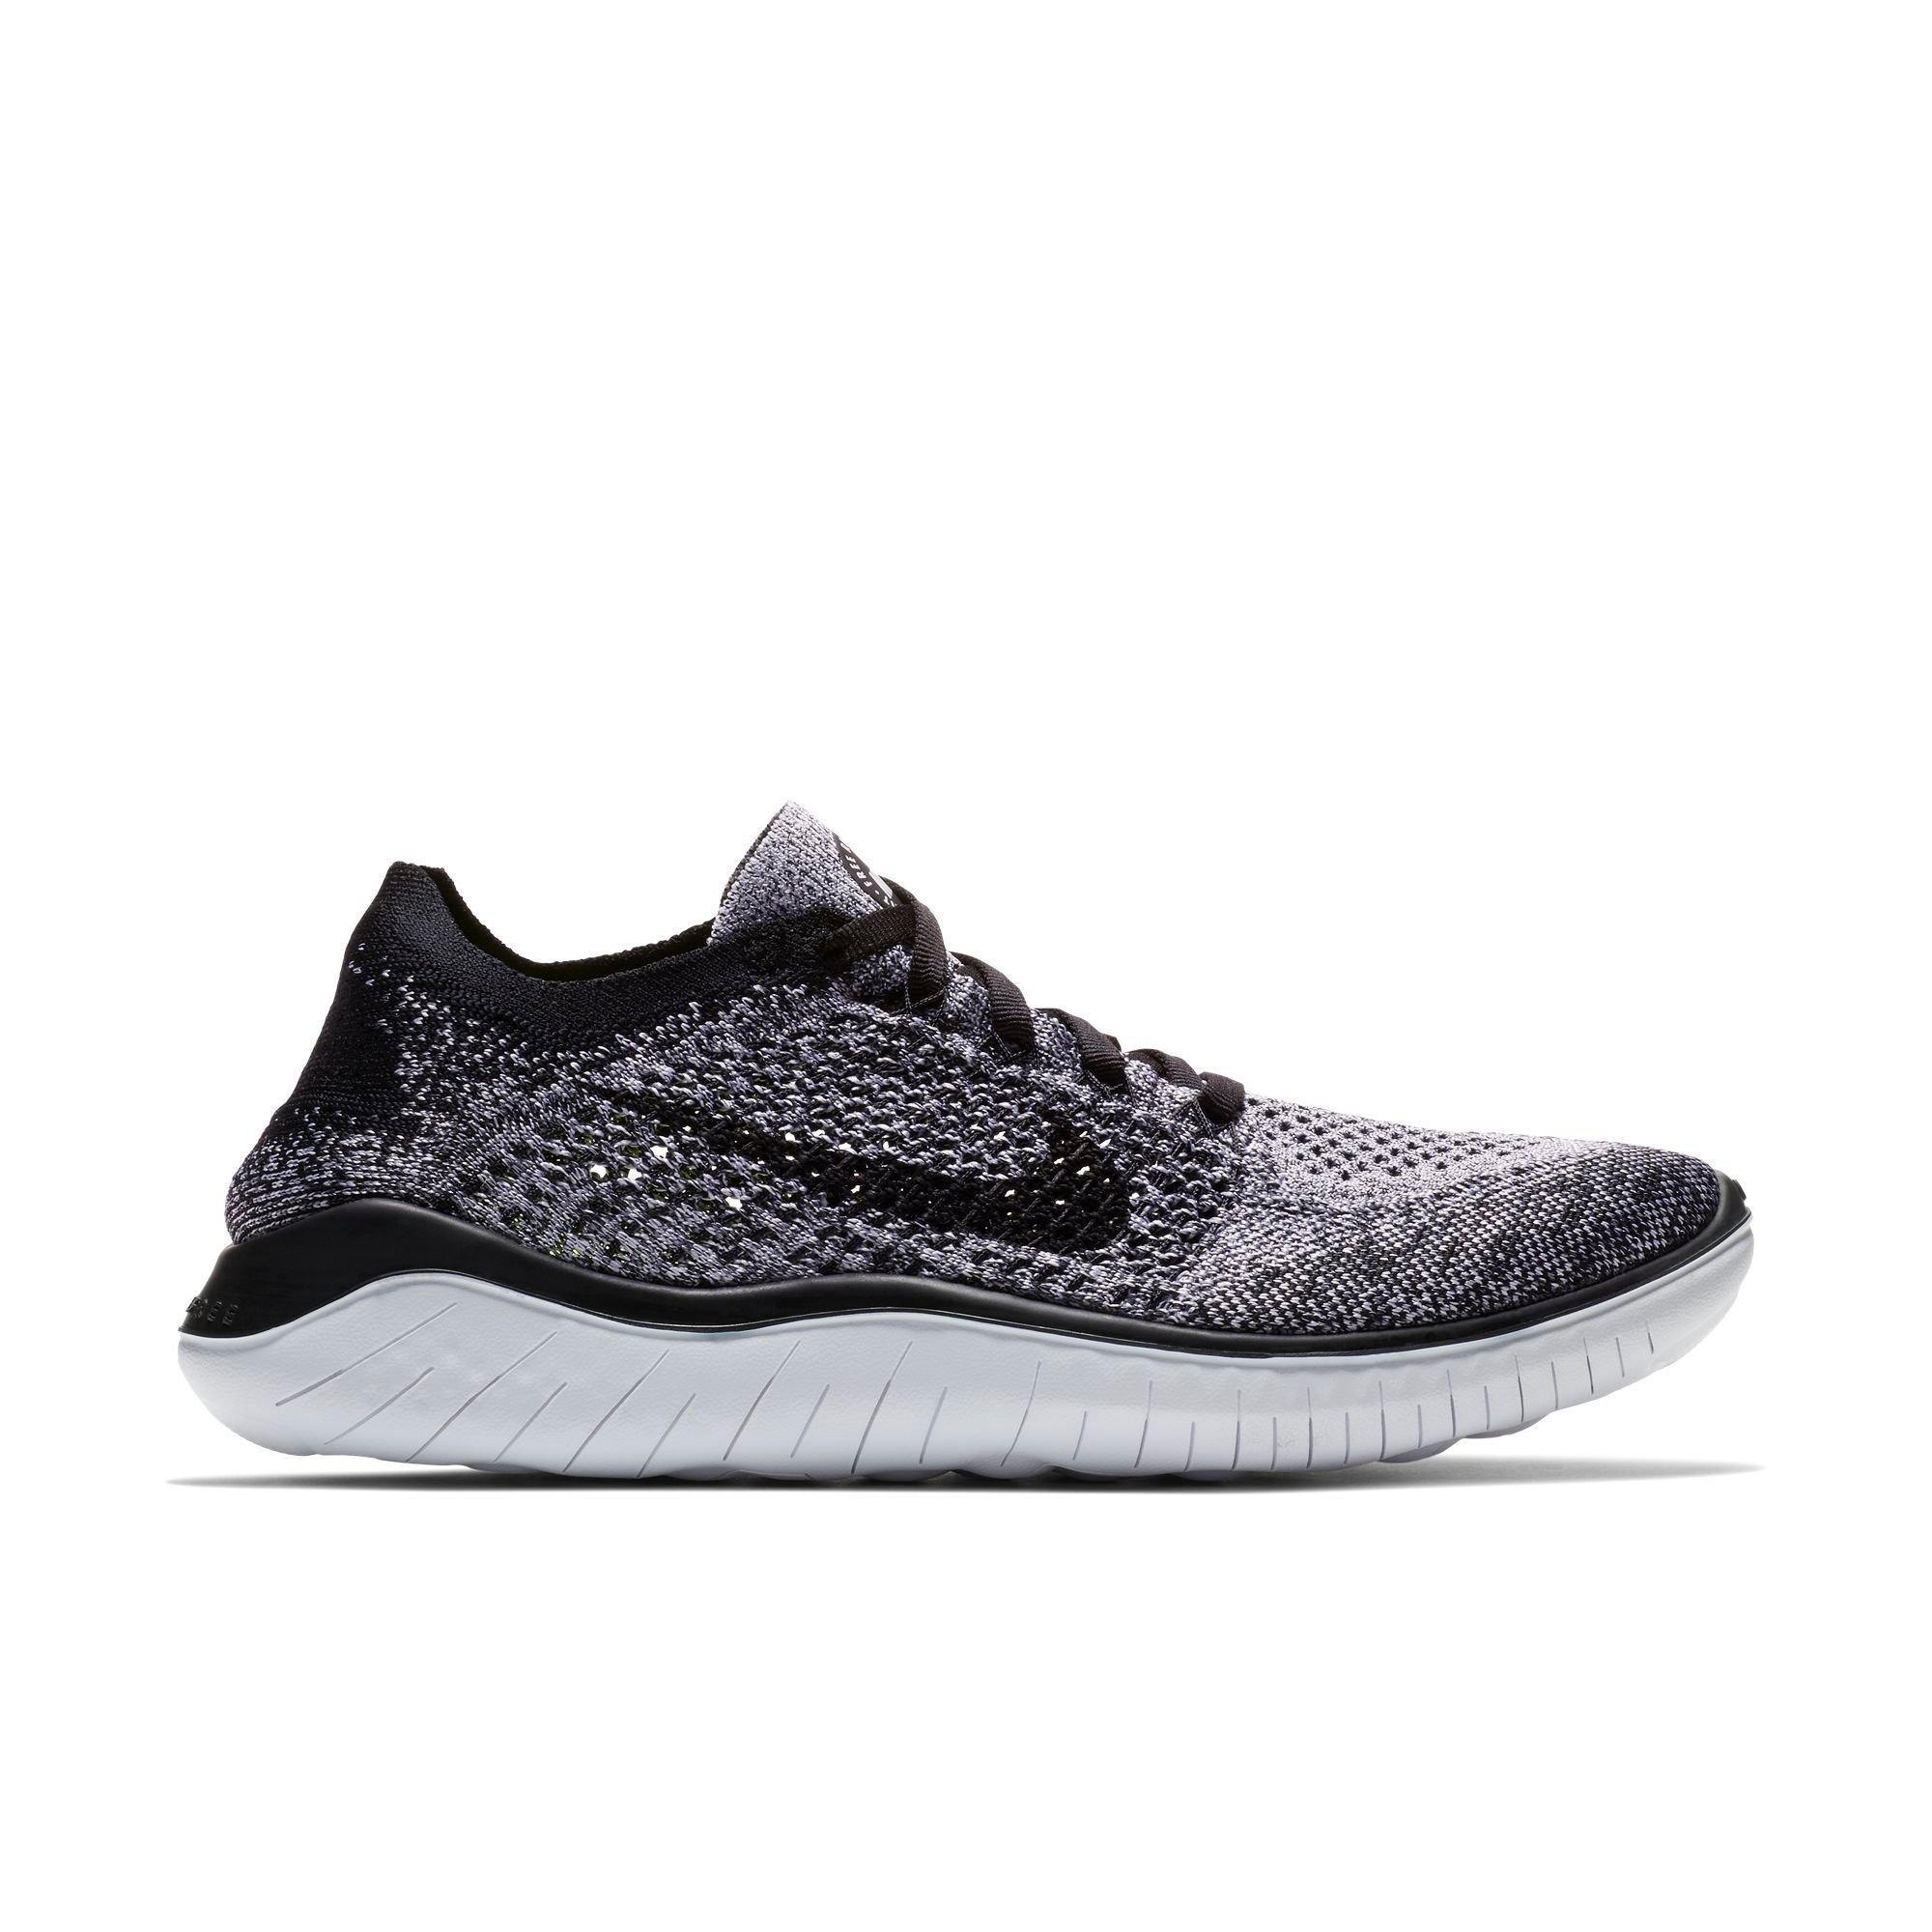 nike mens free rn flyknit running shoes - black/silver under armour